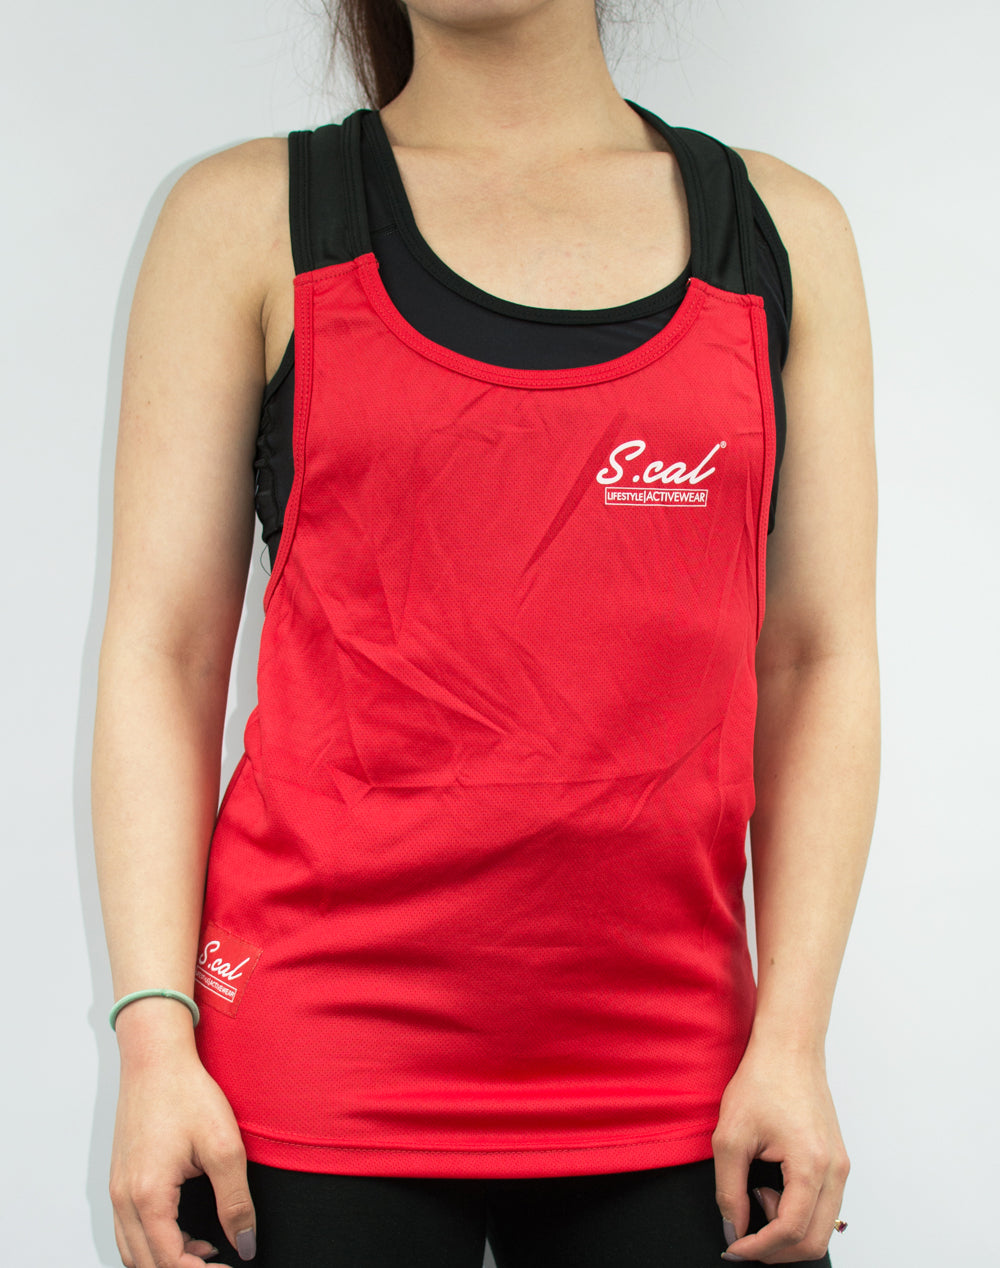 Women's Flexible Tank - Red - Scal Clothing